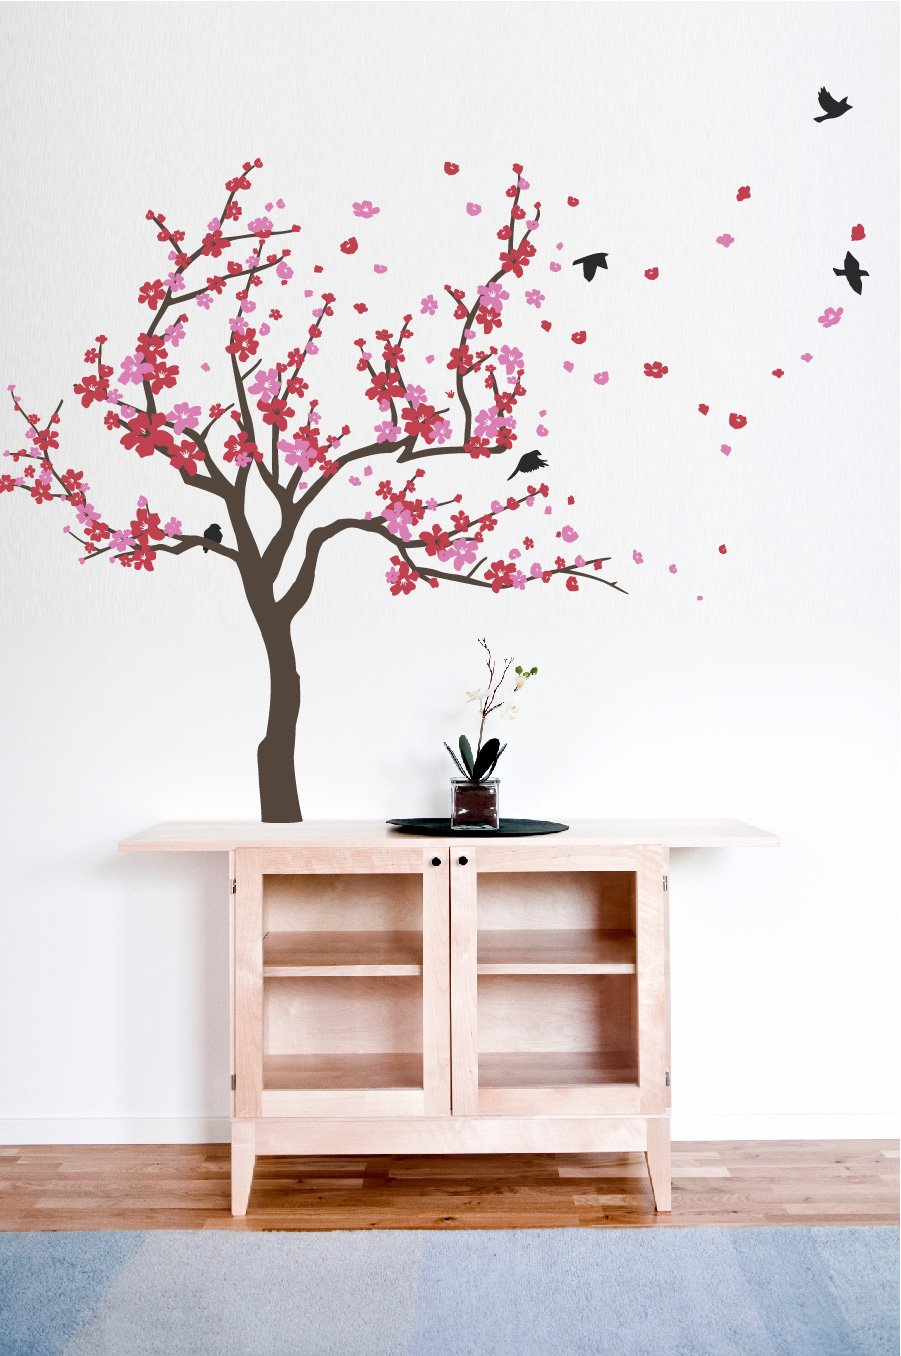 Amazon japanese cherry blossom tree and birds wall decal amazon japanese cherry blossom tree and birds wall decal sticker for flower baby nursery room decor art red pink 38x59 inches home kitchen amipublicfo Image collections